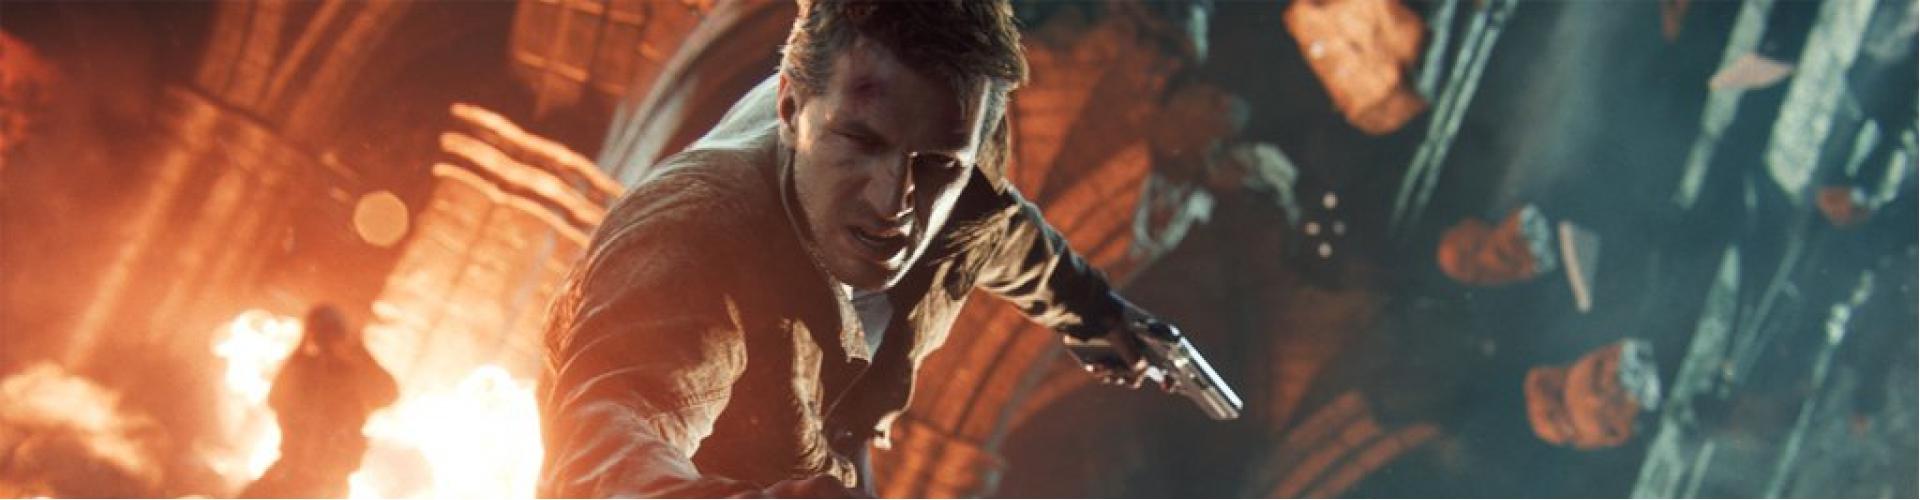 Uncharted 4: Der PS4-Exklusivtitel in der Hands-on-Vorschau